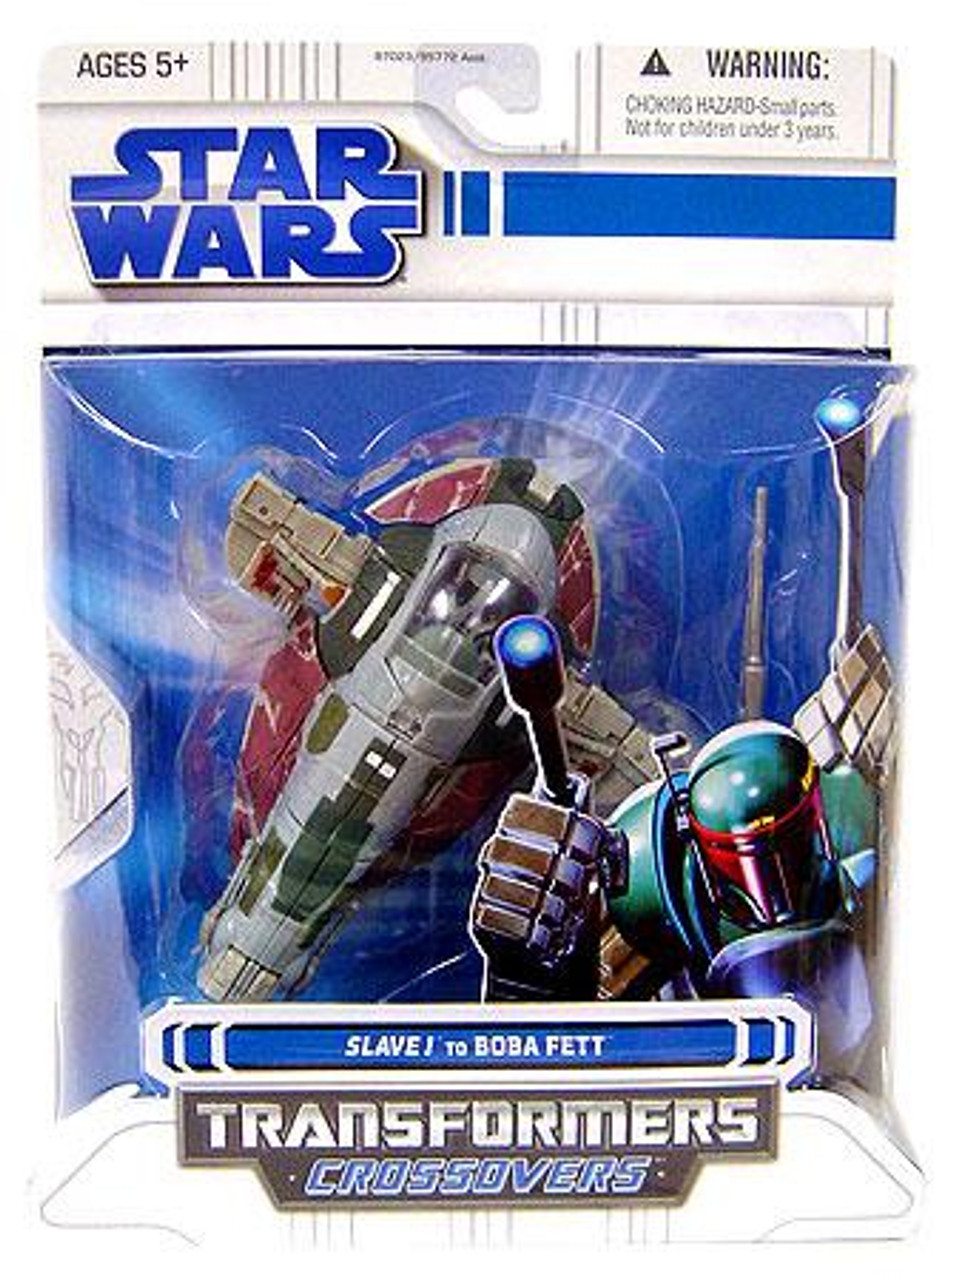 Star Wars Empire Strikes Back Transformers Crossovers 2008 Slave 1 to Boba Fett Action Figure